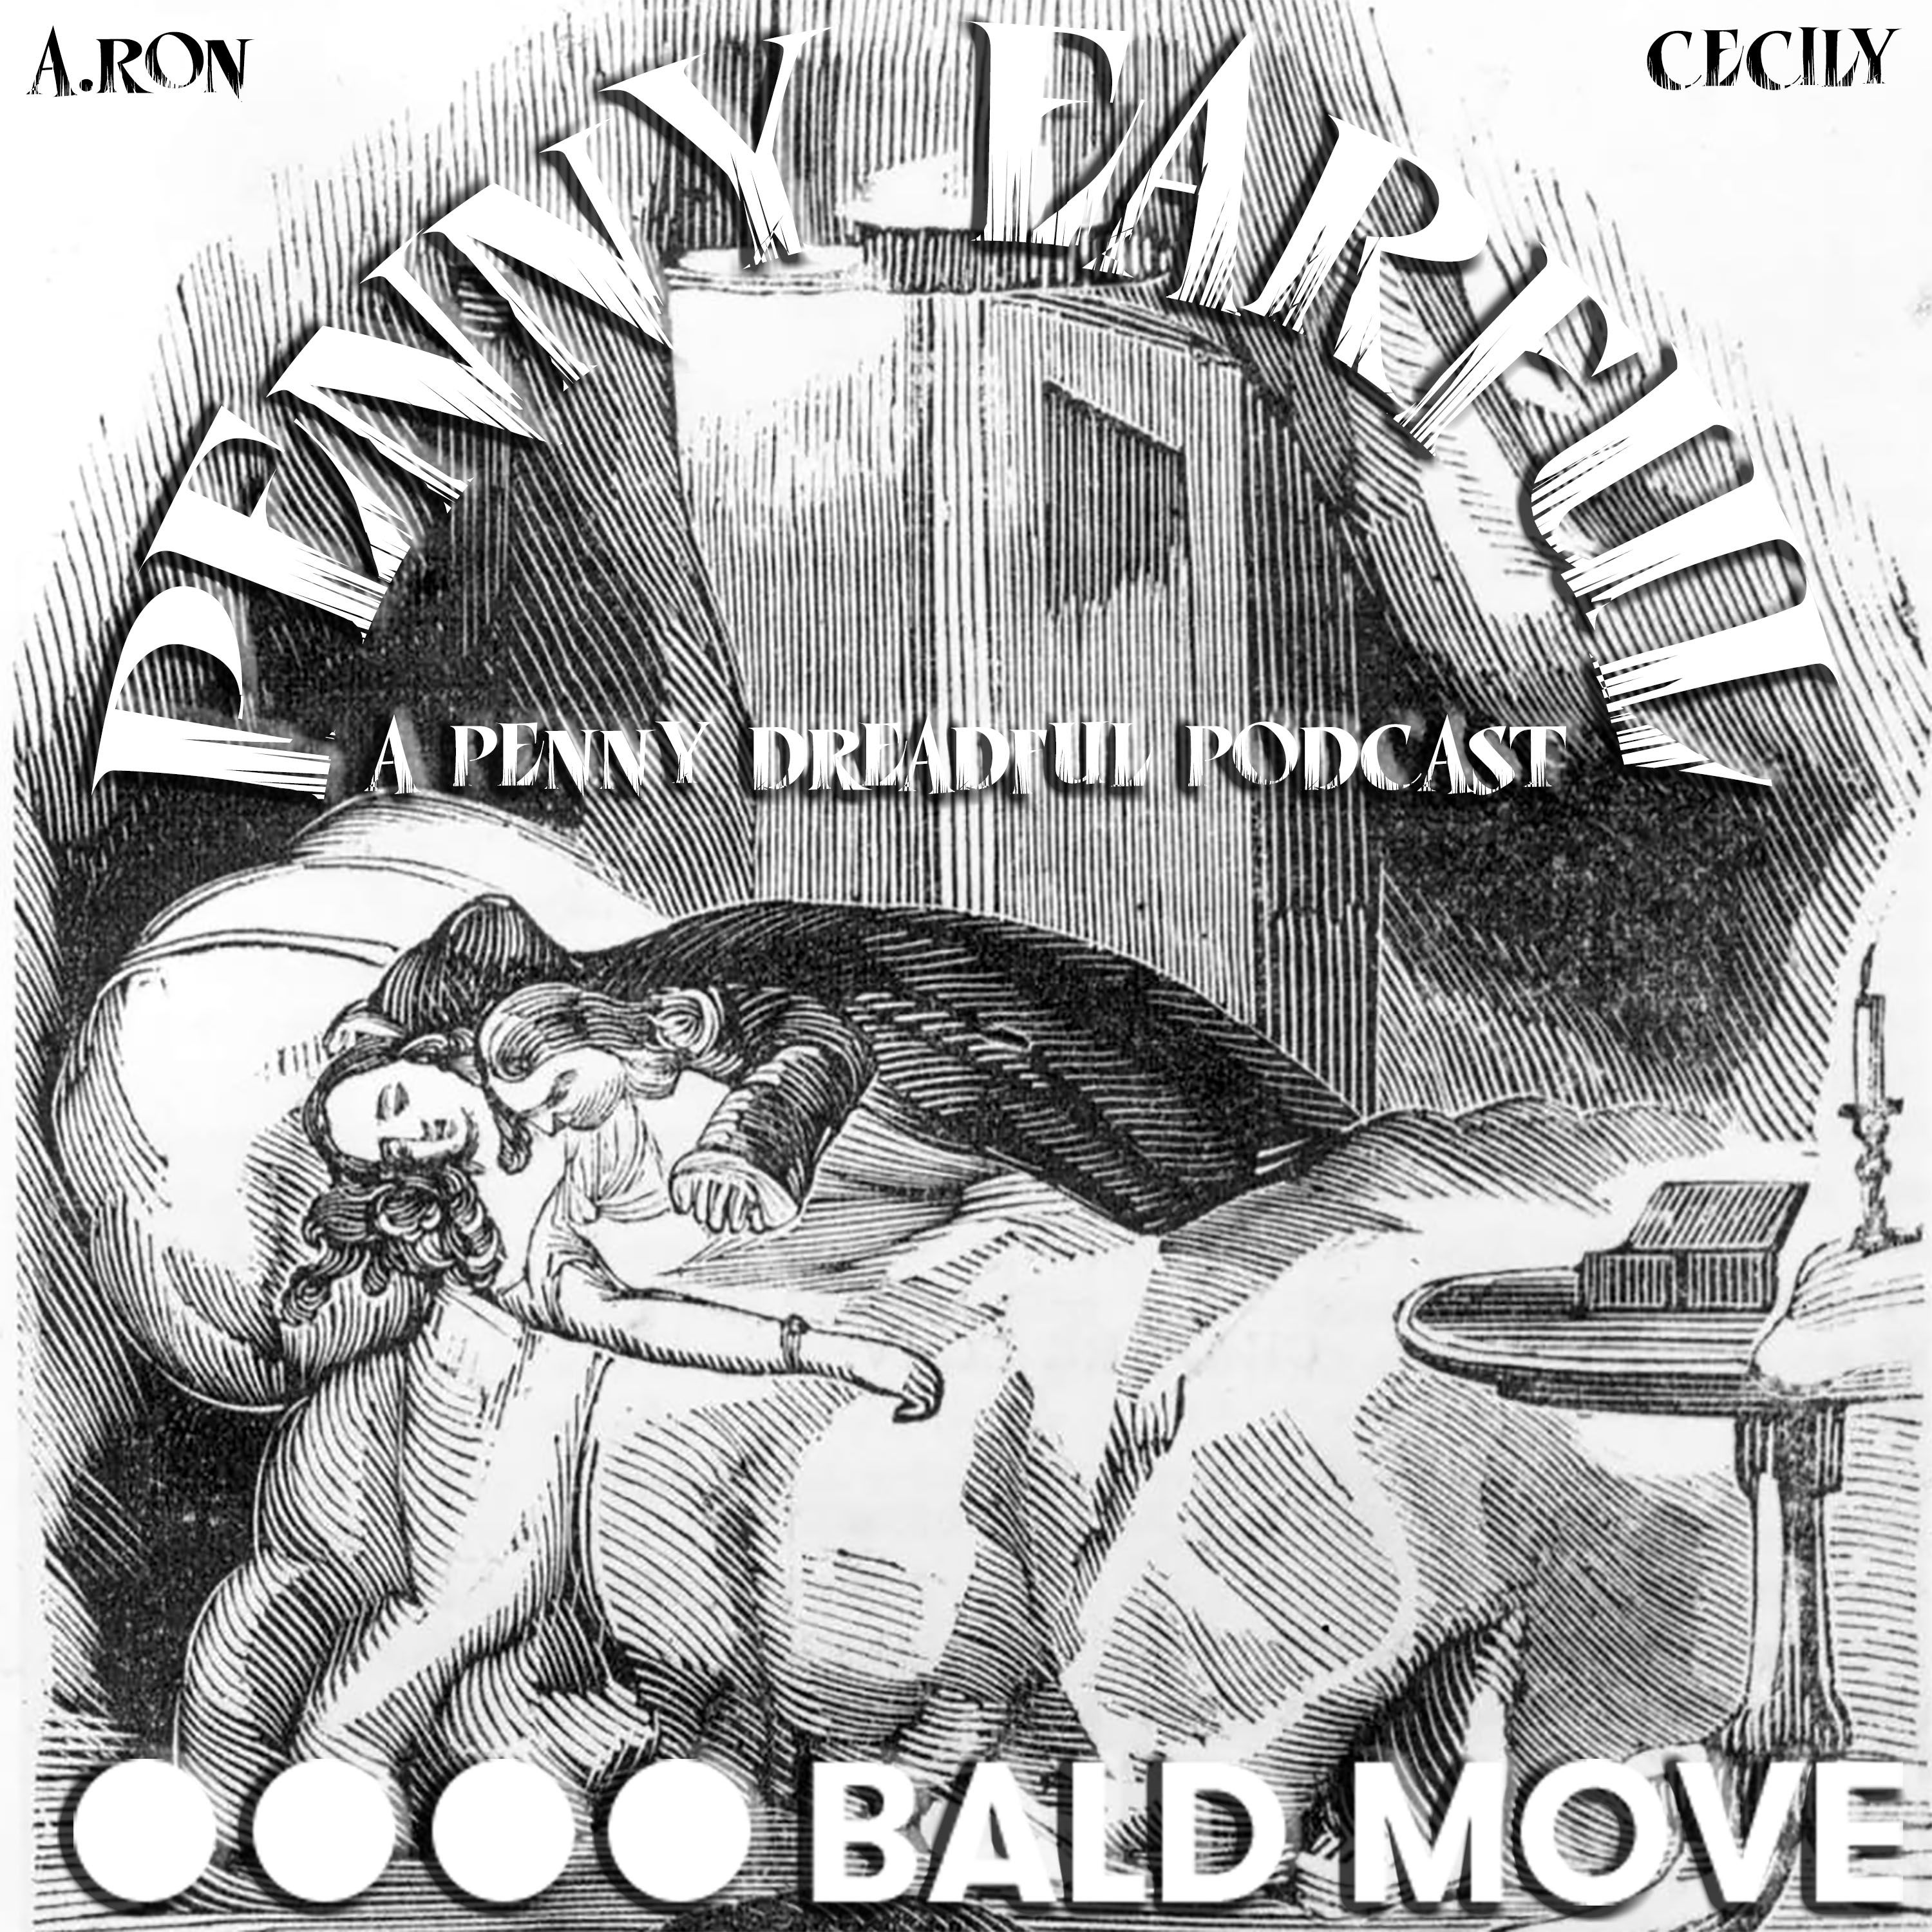 Penny Earful - A Penny Dreadful Podcast